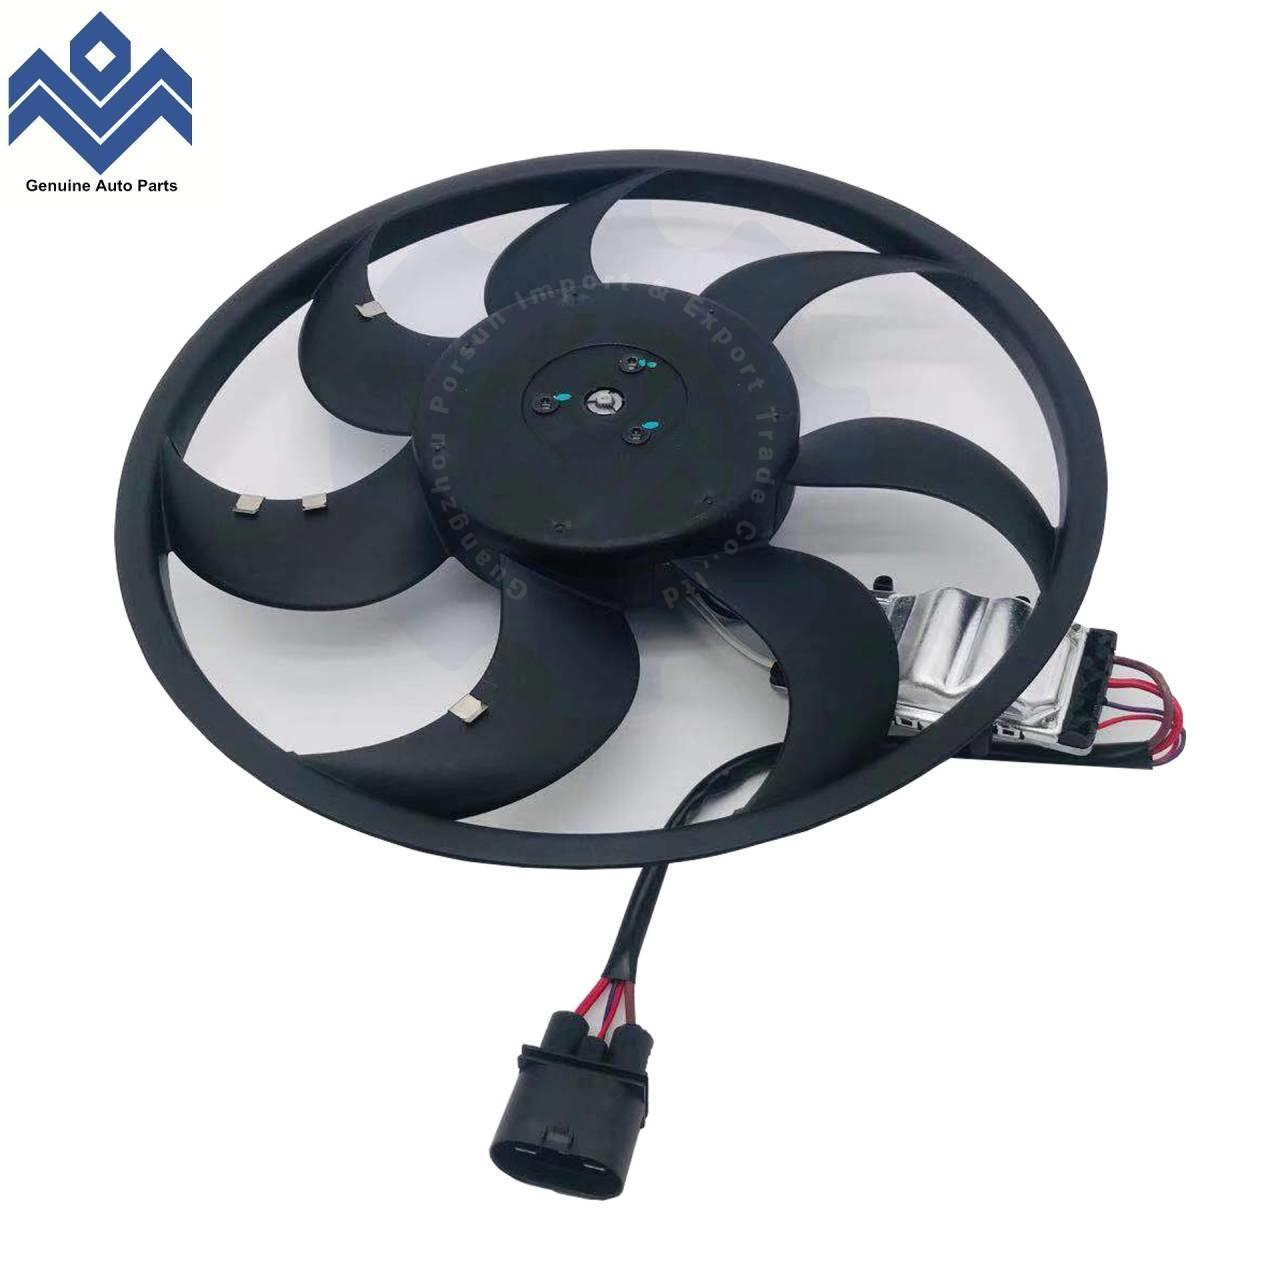 Quality Engine Radiator Cooling Fan Assembly Fits VW Touareg  Audi Q7 7L0959455G 995 624 136 01 for sale